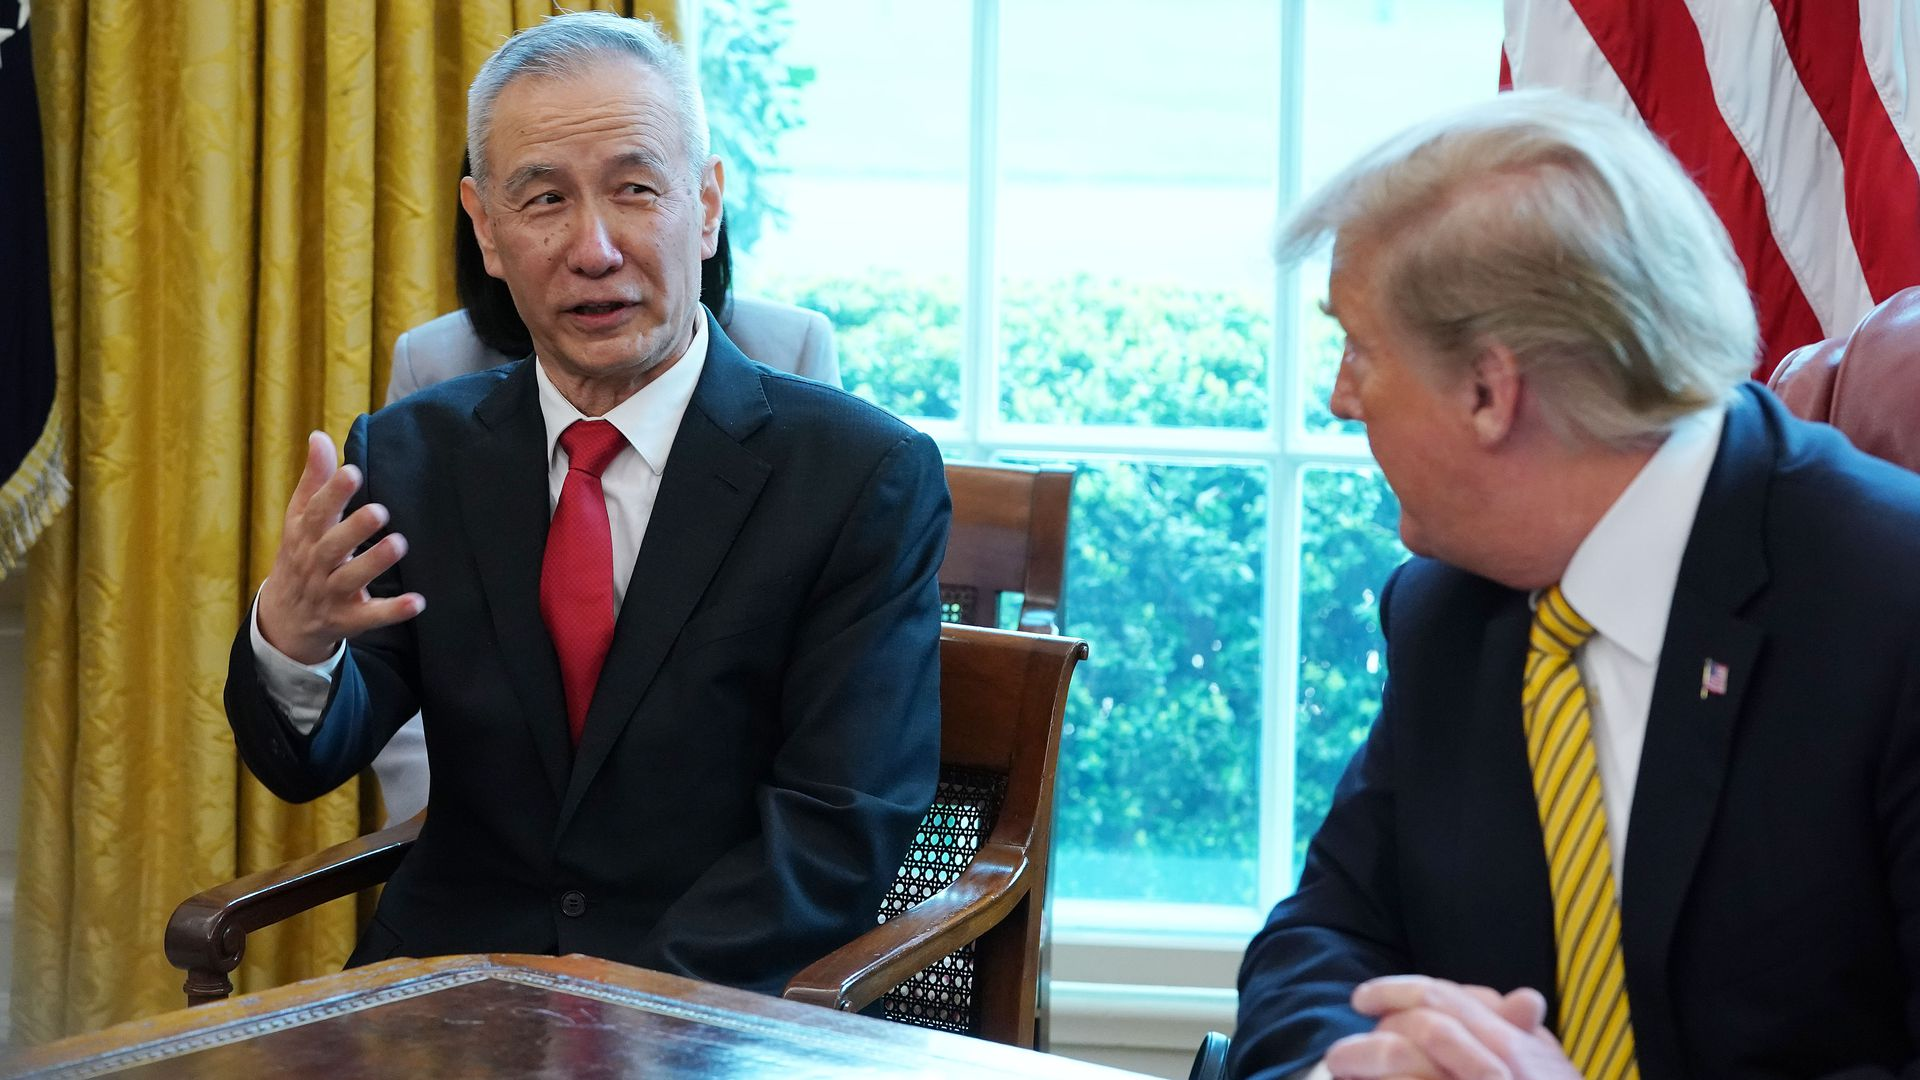 In this image, Trump sits at his desk in the Oval Office and listens to Liu He.